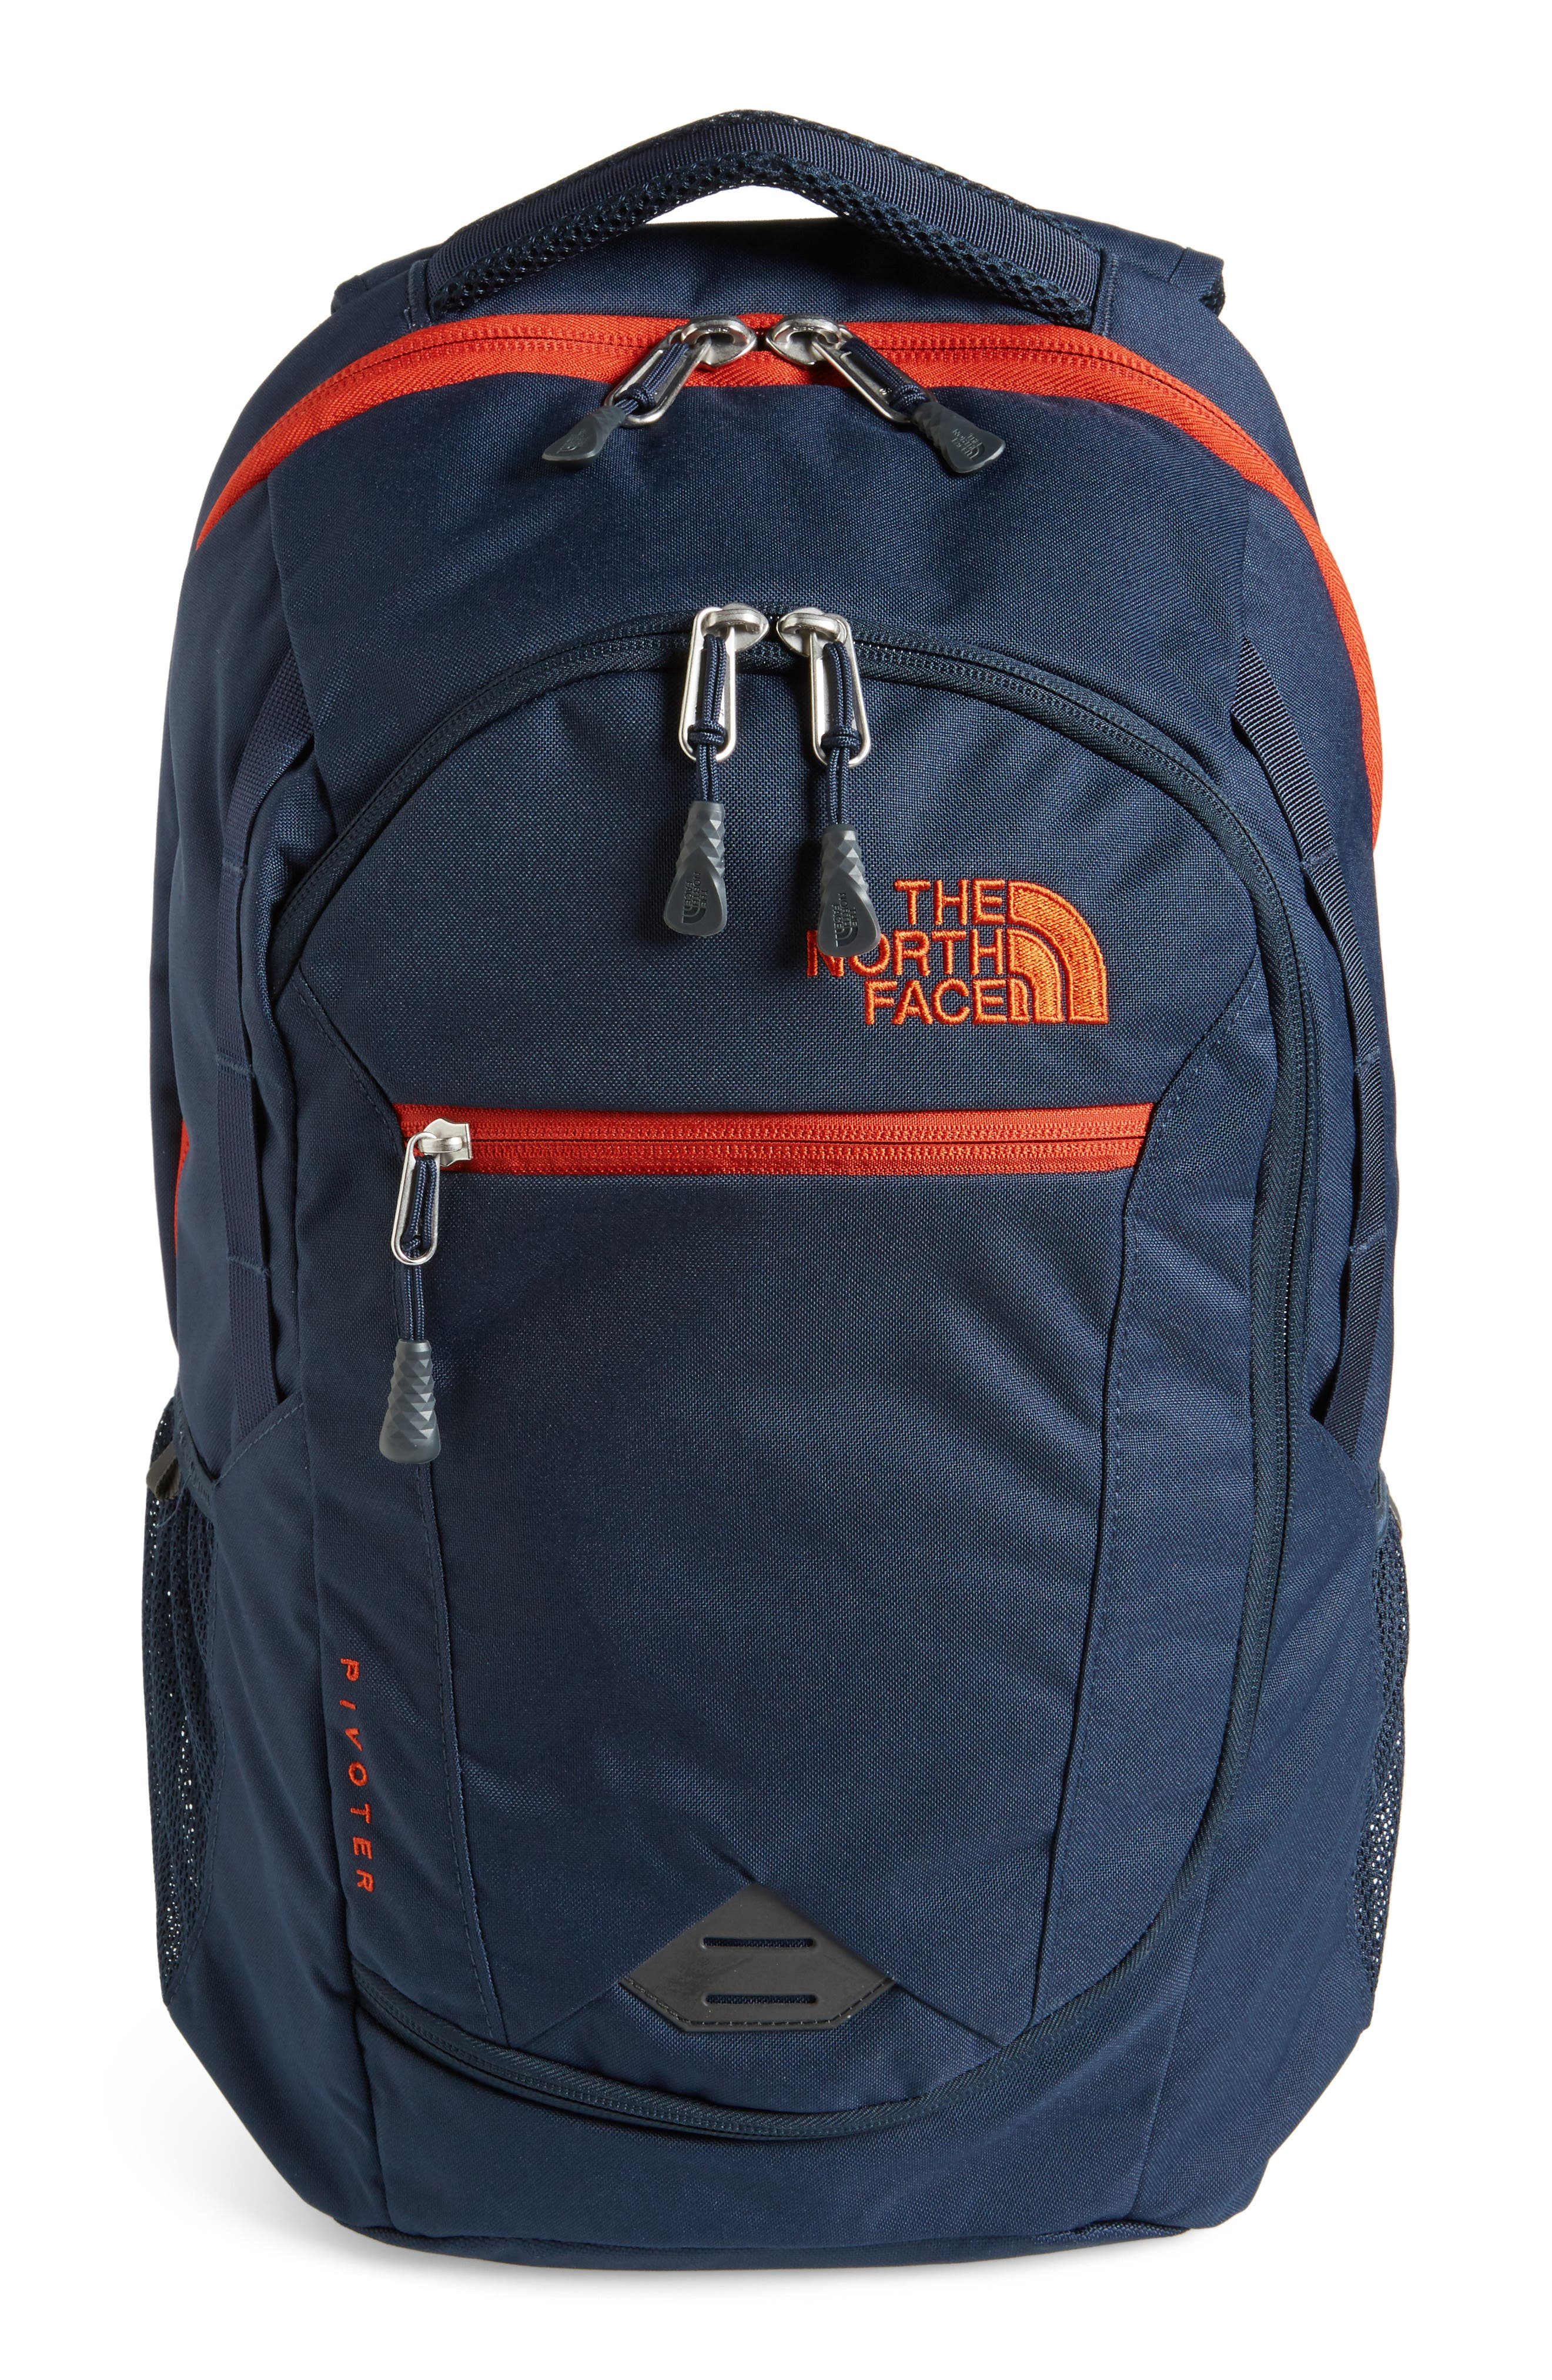 The North Face Pivoter Backpack (Kids)